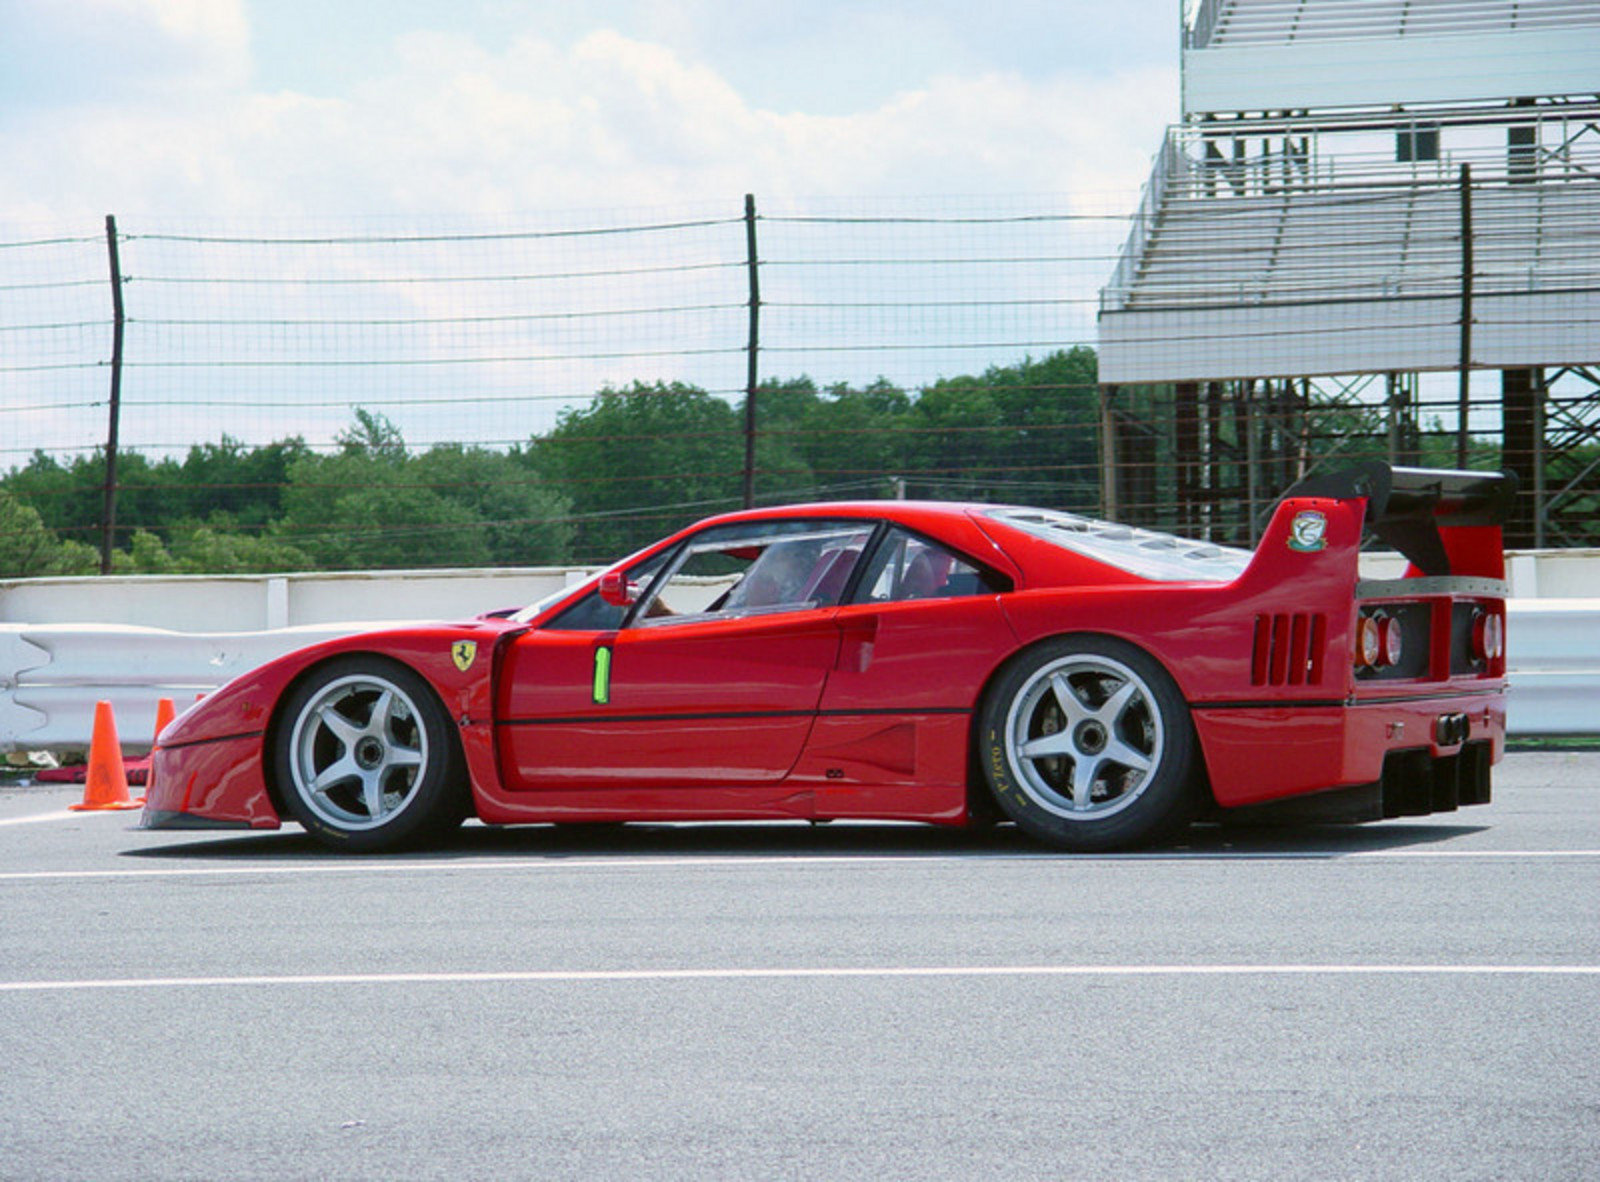 ferrari f40 related images,start 150 - WeiLi Automotive Network